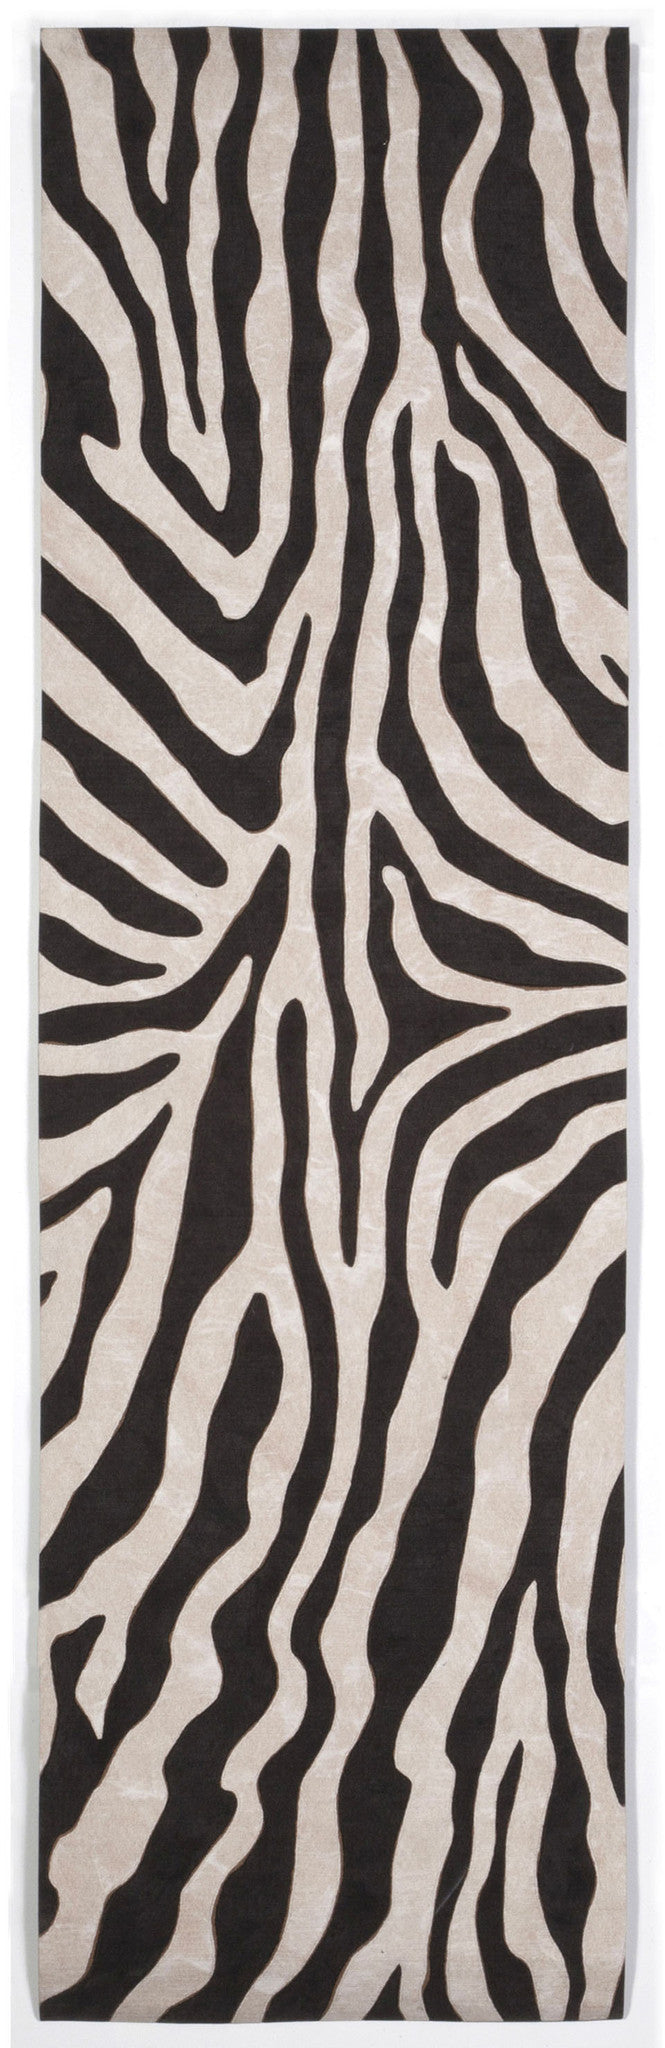 "Zebra Black 27"" x 8' Indoor/Outdoor Flatweave Rug"